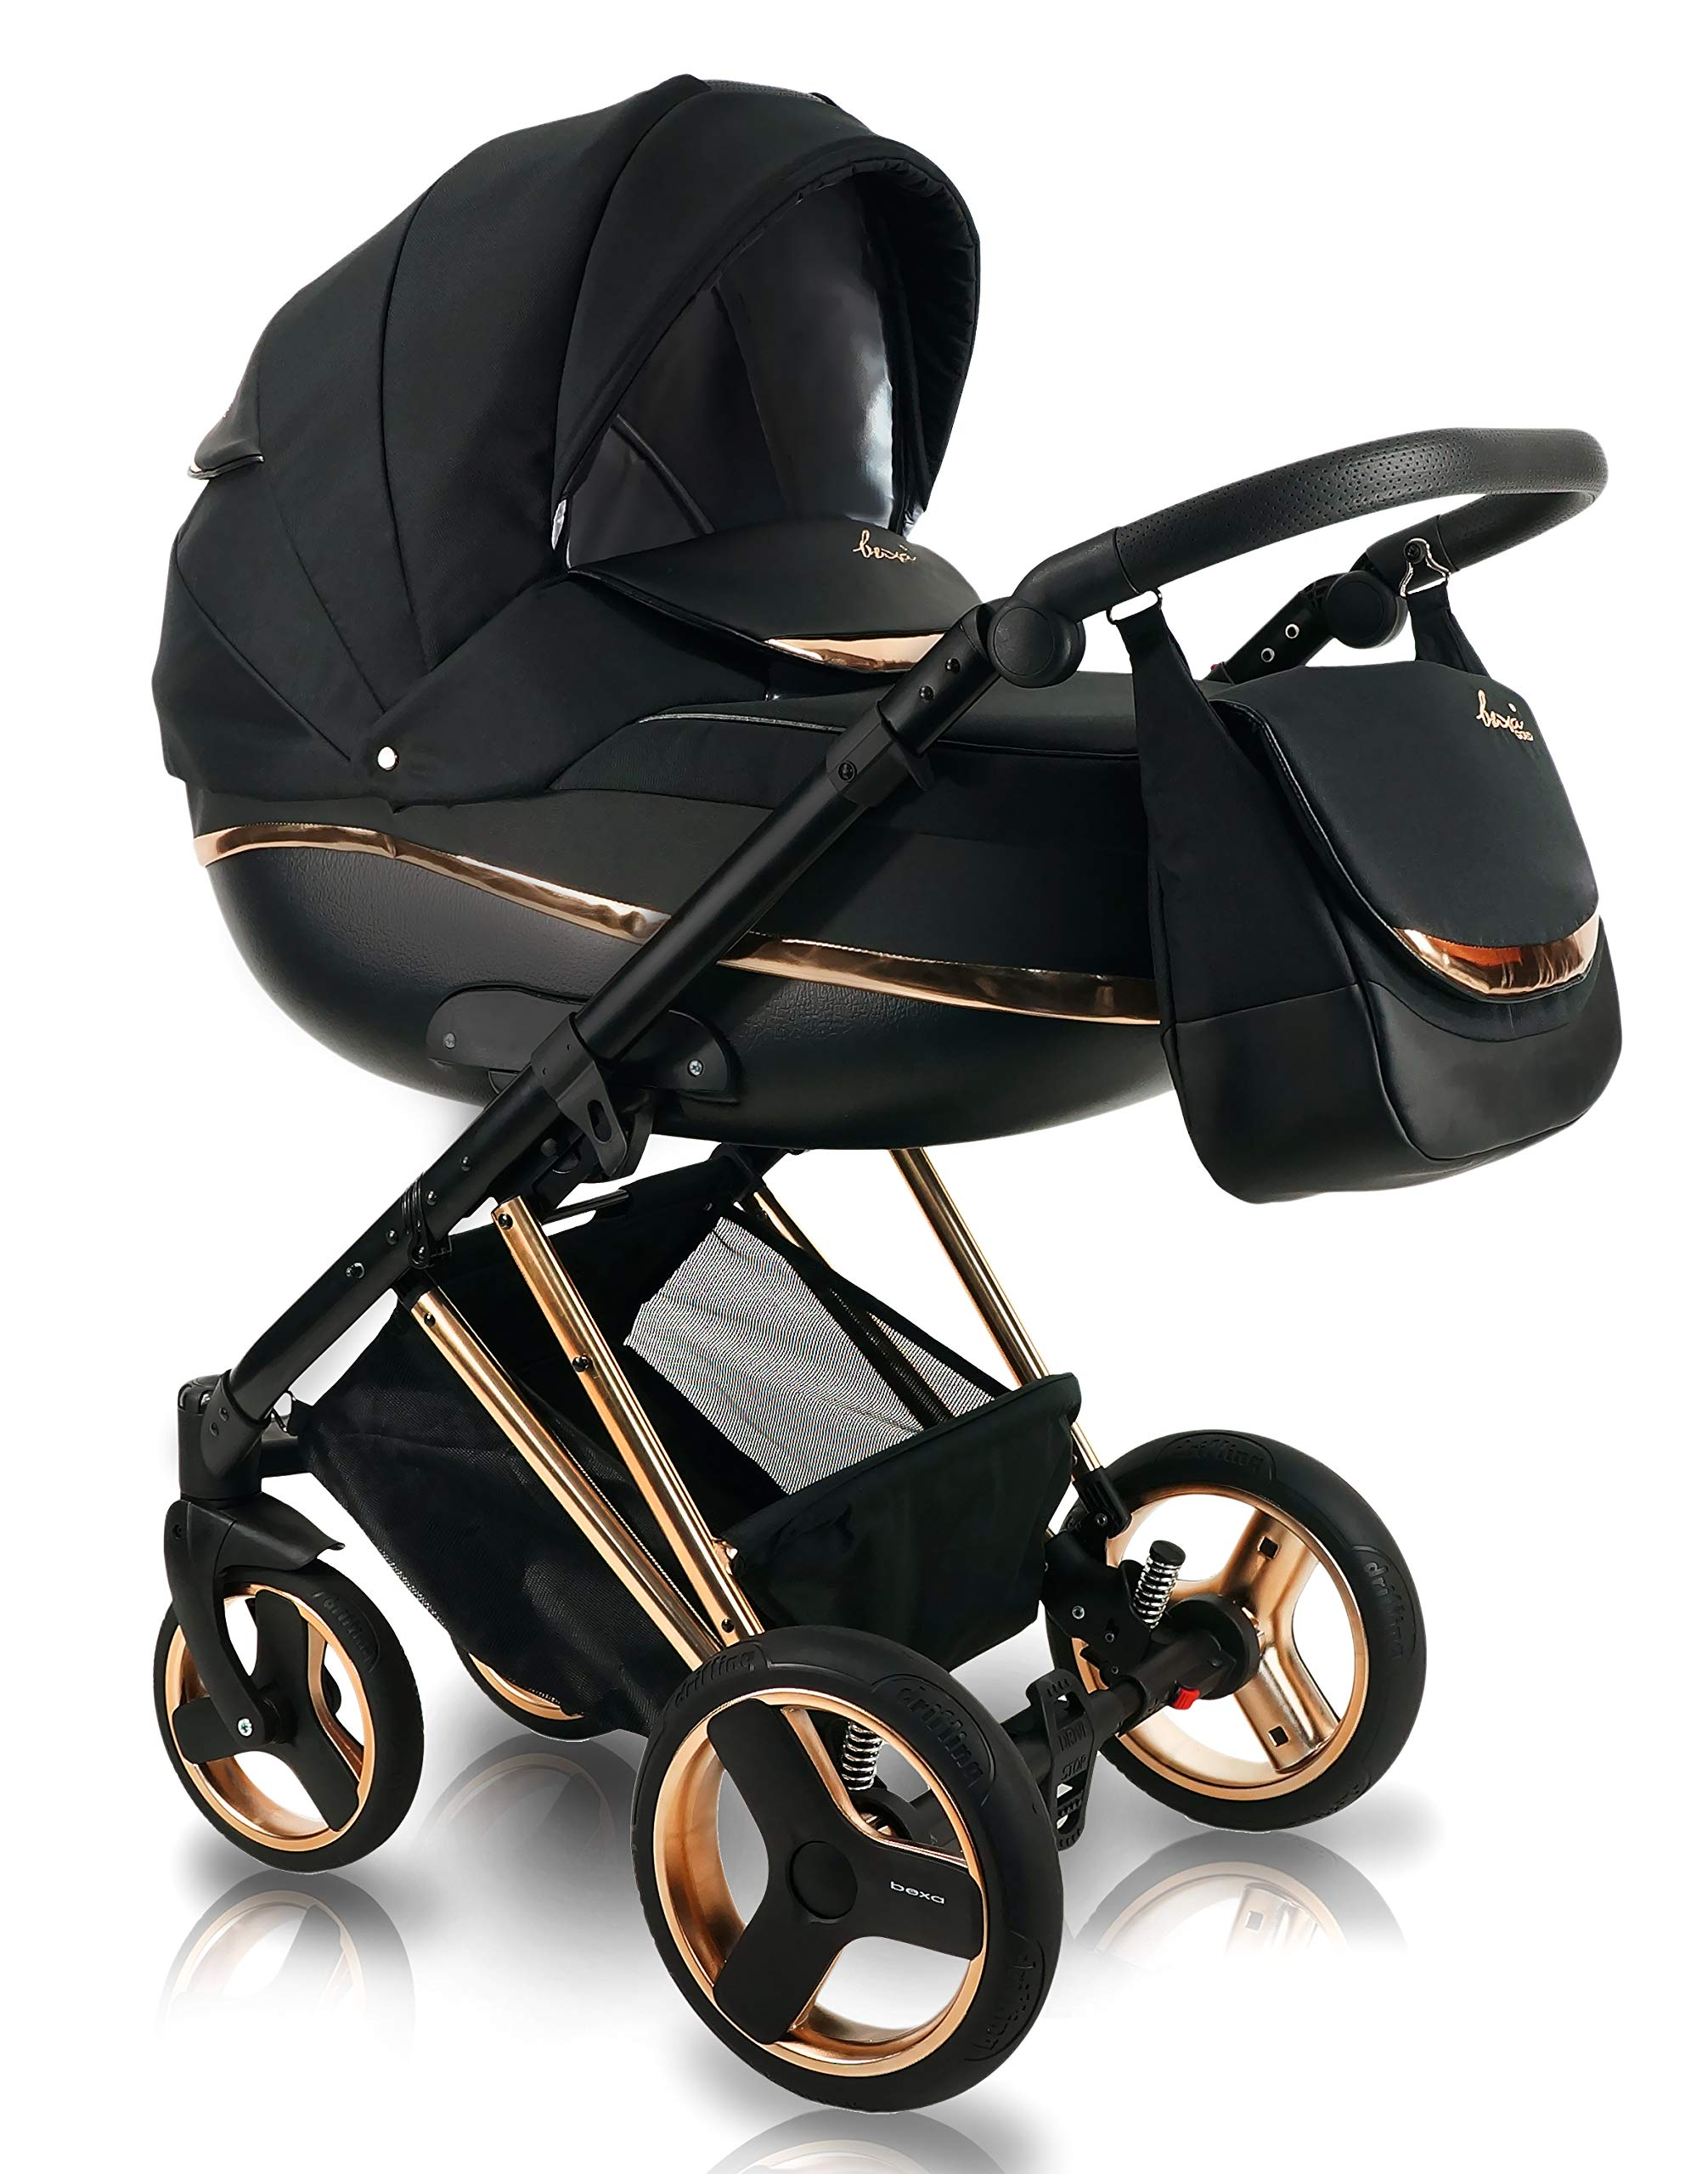 SaintBaby Stroller Buggy Baby seat Car seat Next II Gold Chrome Gold N1 4in1 with Isofix SaintBaby If you want the black frame instead of the gold frame, please inform us after the purchase. 3in1 or 2in1 Selectable. At 3in1 you will also receive the car seat (baby seat). Of course you get the baby tub (classic pram) as well as the buggy attachment (sports seat) no matter if 2in1 or 3in1. The car naturally complies with the EU safety standard EN1888. During production and before shipment, each wagon is carefully inspected so that you can be sure you have one of the best wagons. Saintbaby stands for all-in-one carefree packages, so you will also receive a diaper bag in the same colour as the car as well as rain and insect protection free of charge. With all the colours of this pram you will find the pram of your dreams. 1